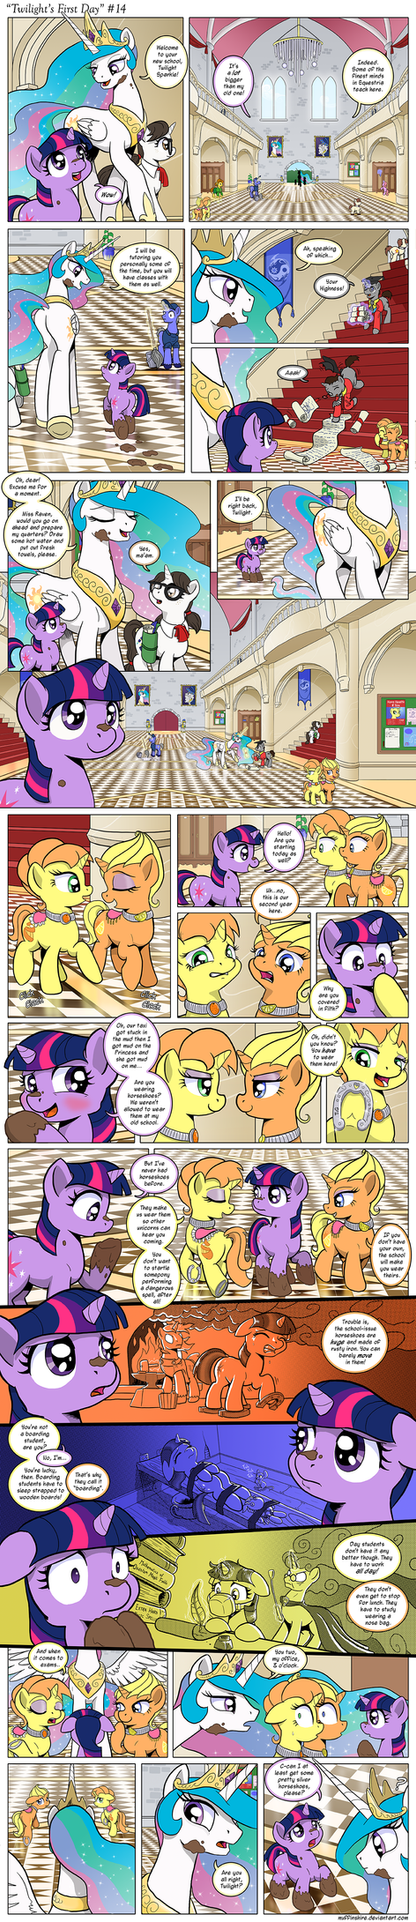 Comic - Twilight's First Day #14 by muffinshire